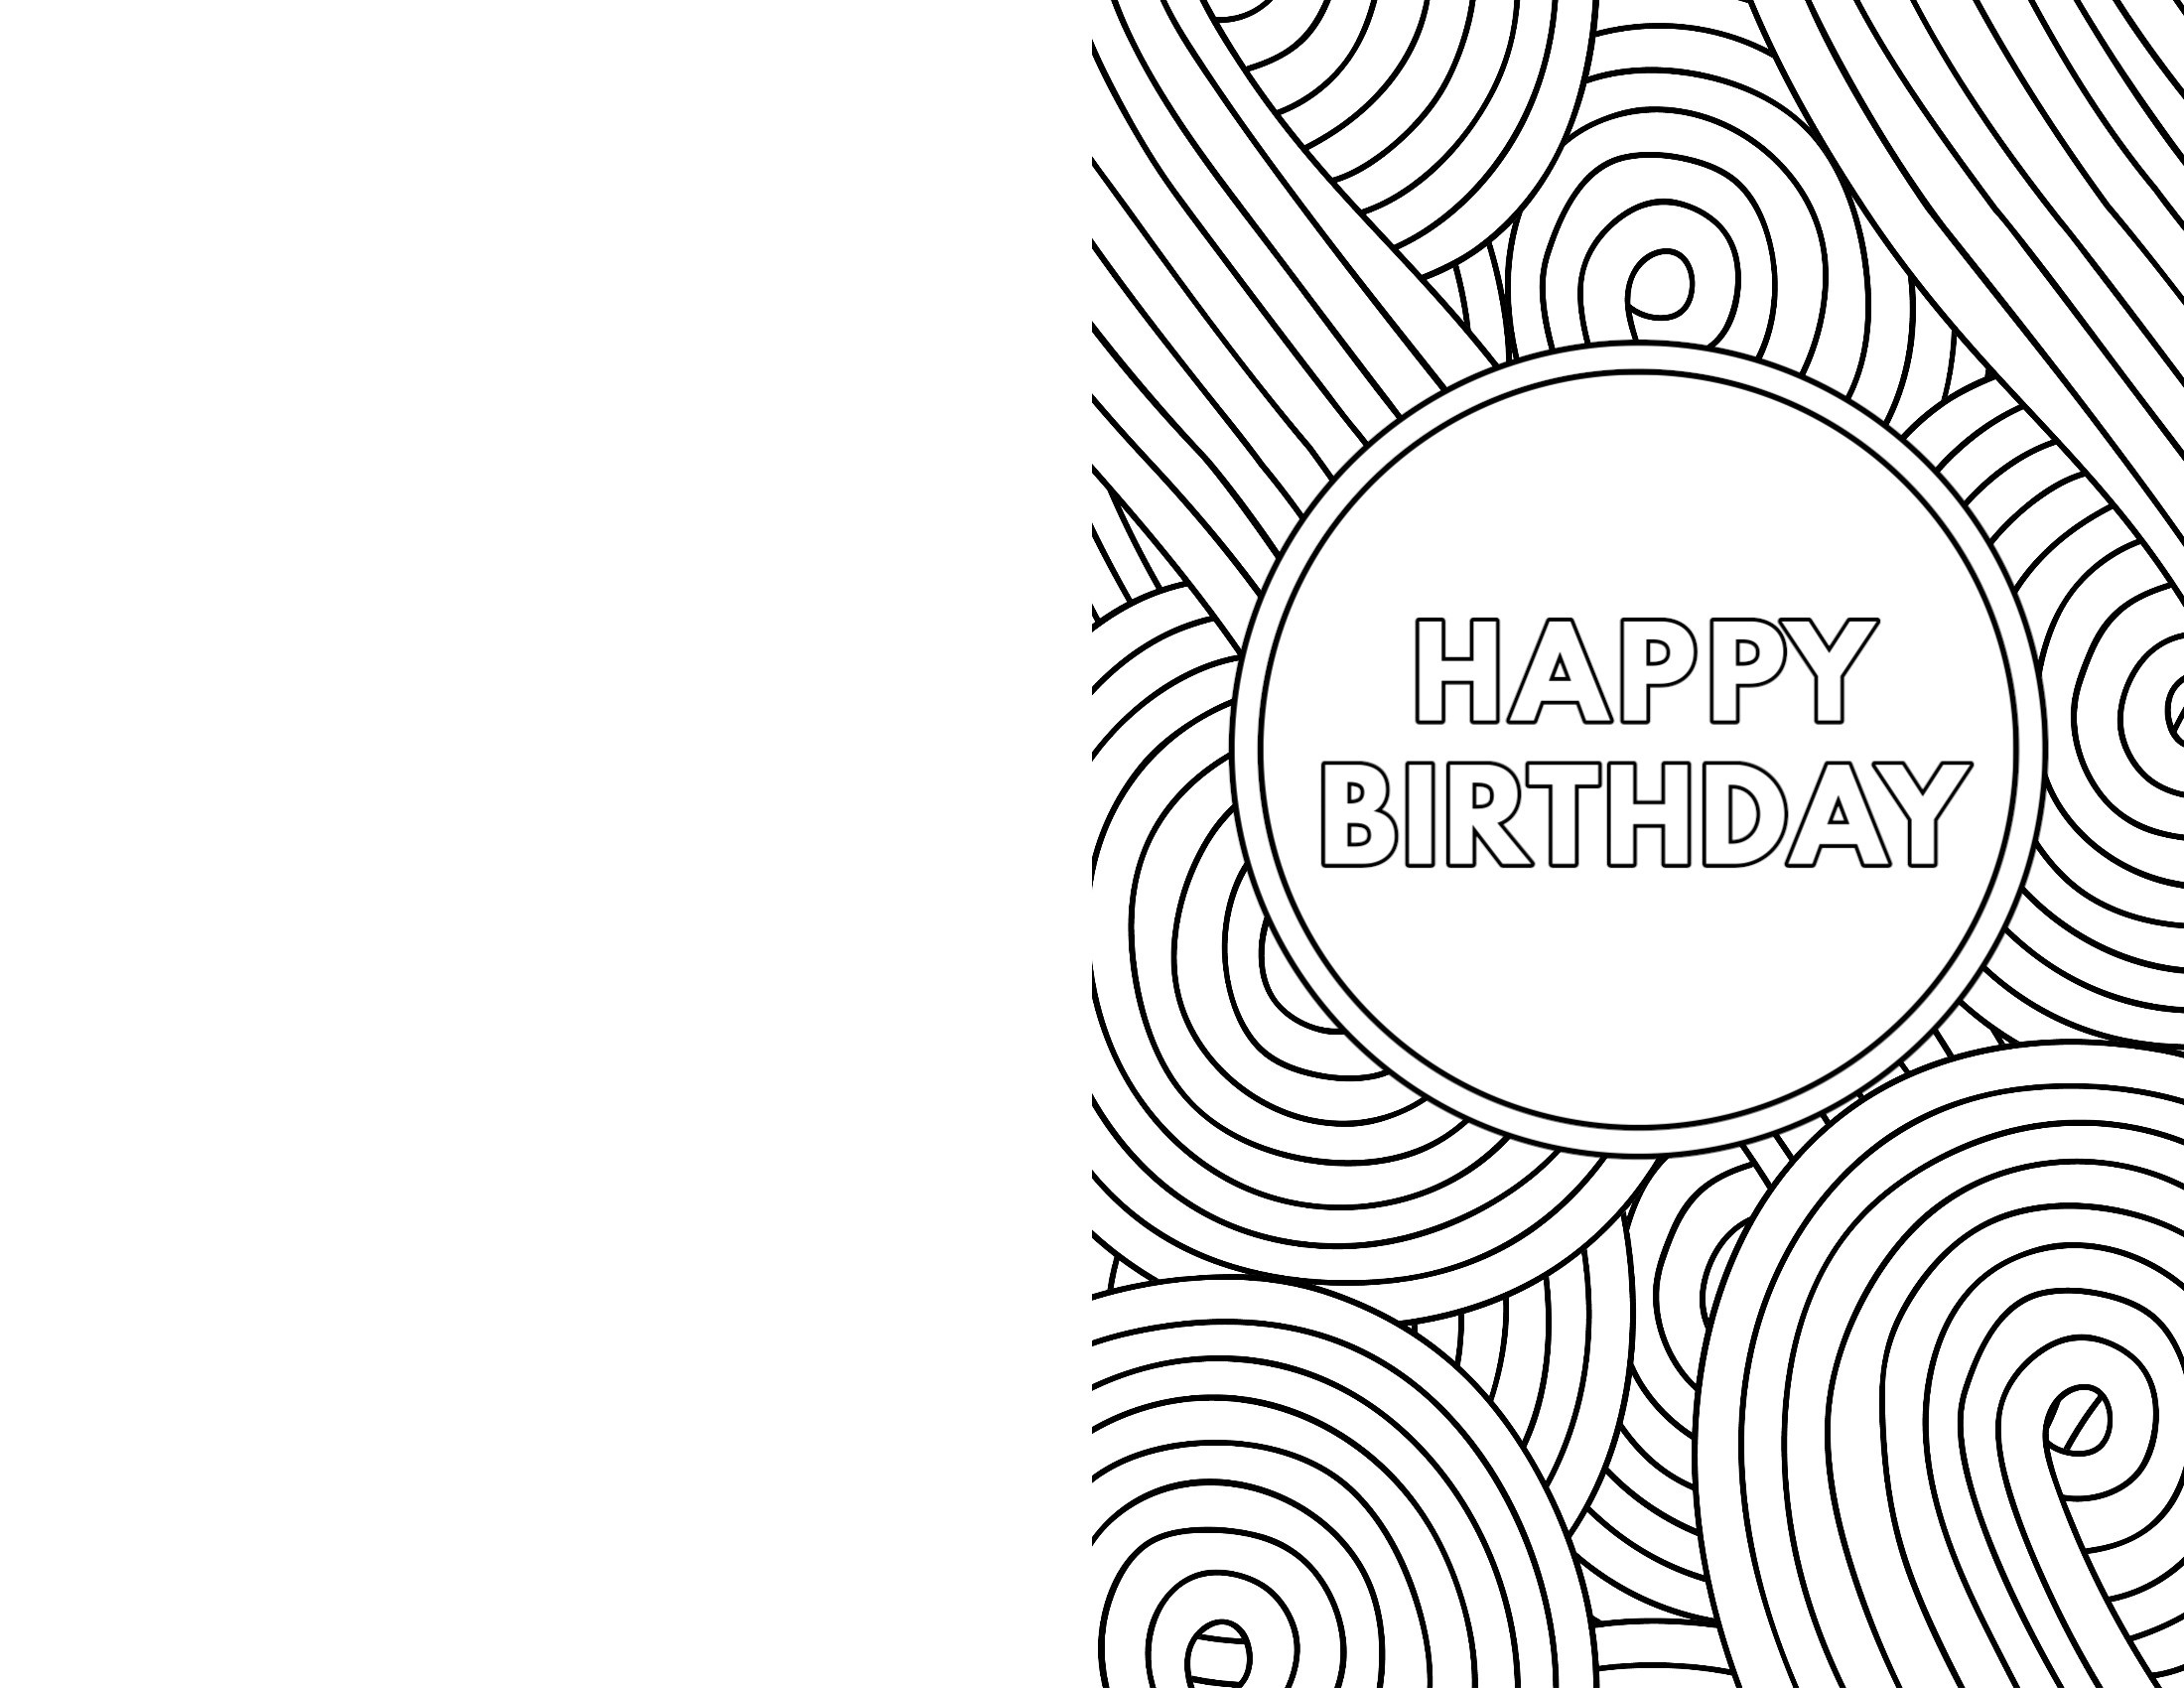 Free Printable Birthday Cards - Paper Trail Design - Free Printable Birthday Cards For Boys